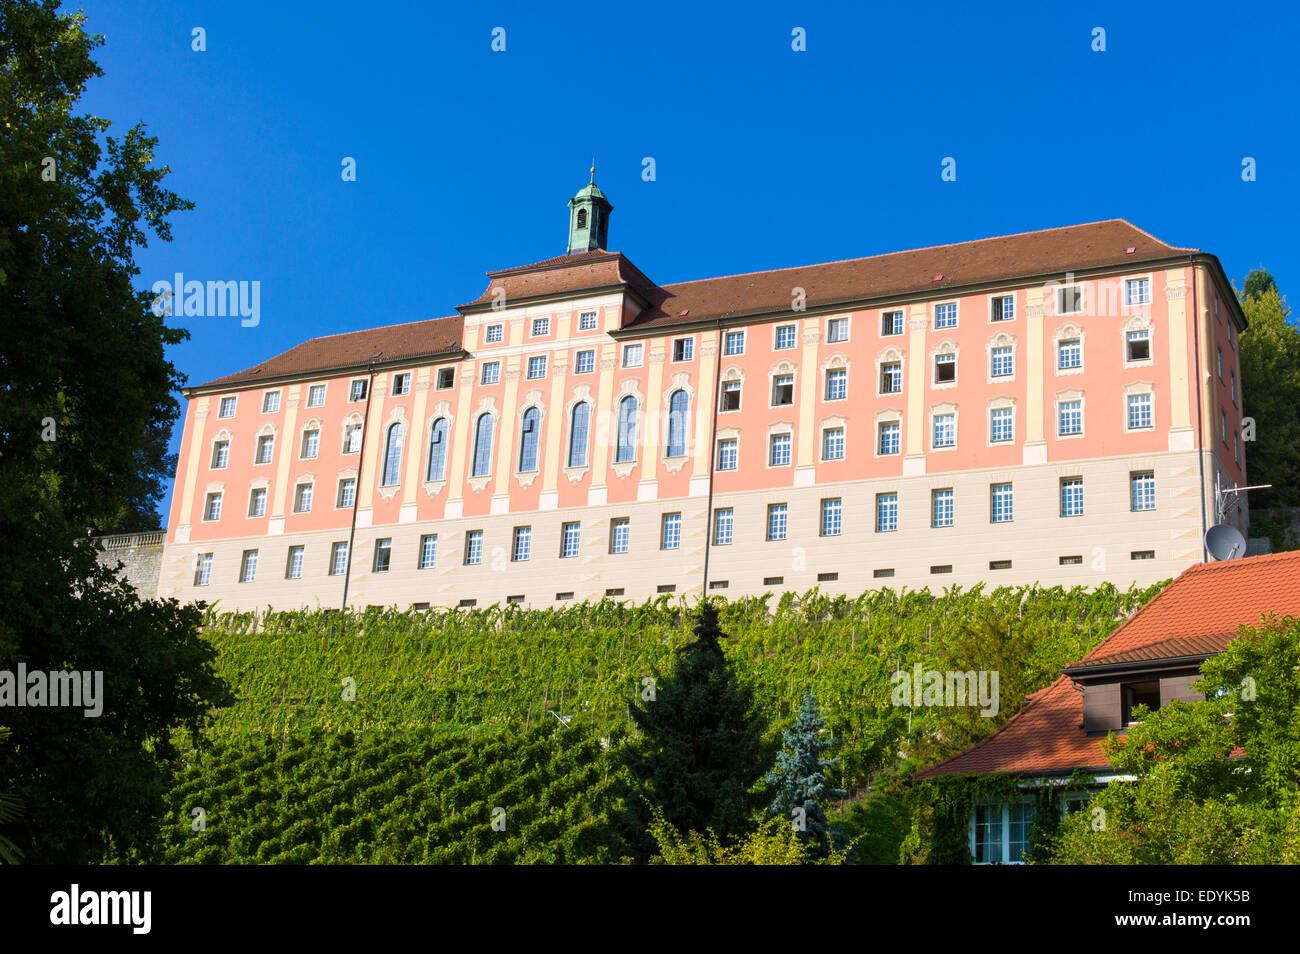 Droste-Hülshoff-Gymnasium, secondary school and boarding school, Meersburg, Bavaria, Germany - Stock Image